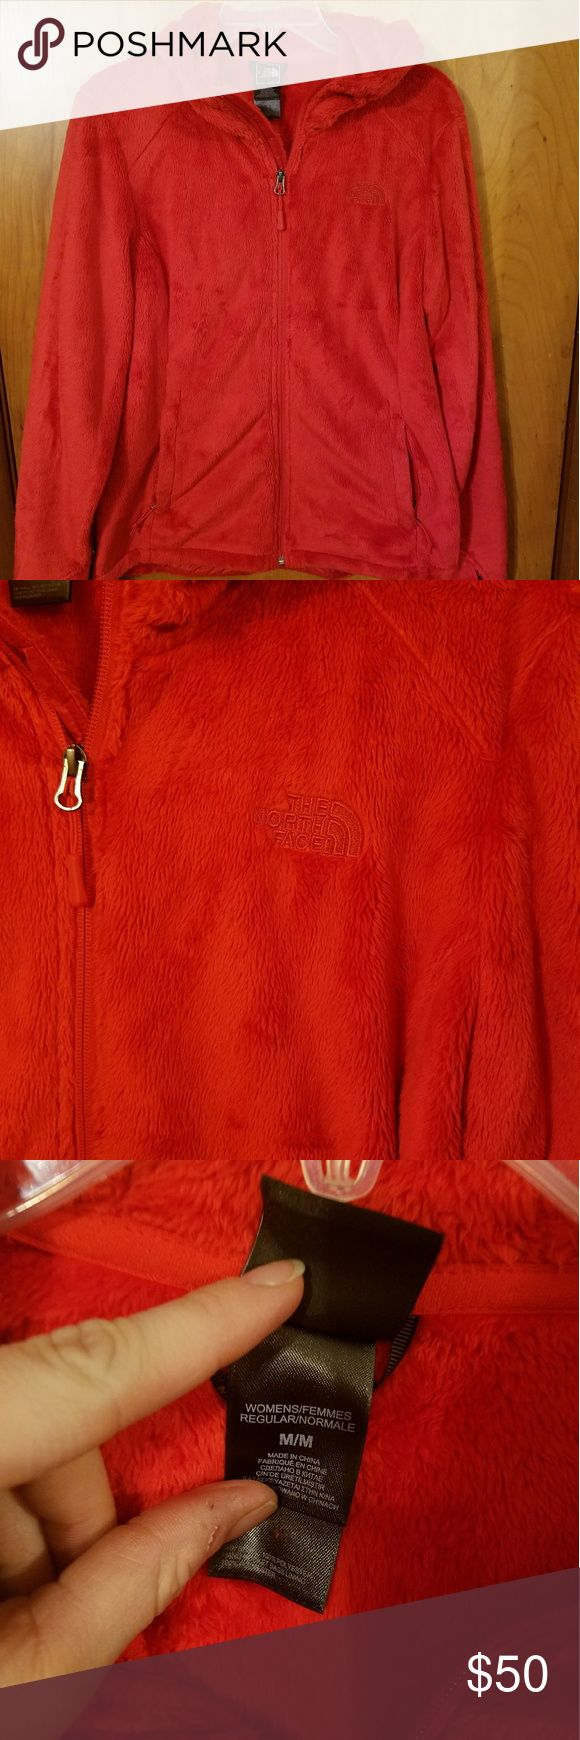 NWOT Red North Face Jacket Bright red furry jacket. Has a hood and 2 side pockets. Perfect condition! Size medium. NO LOWBALLS!! The North Face Jackets & Coats